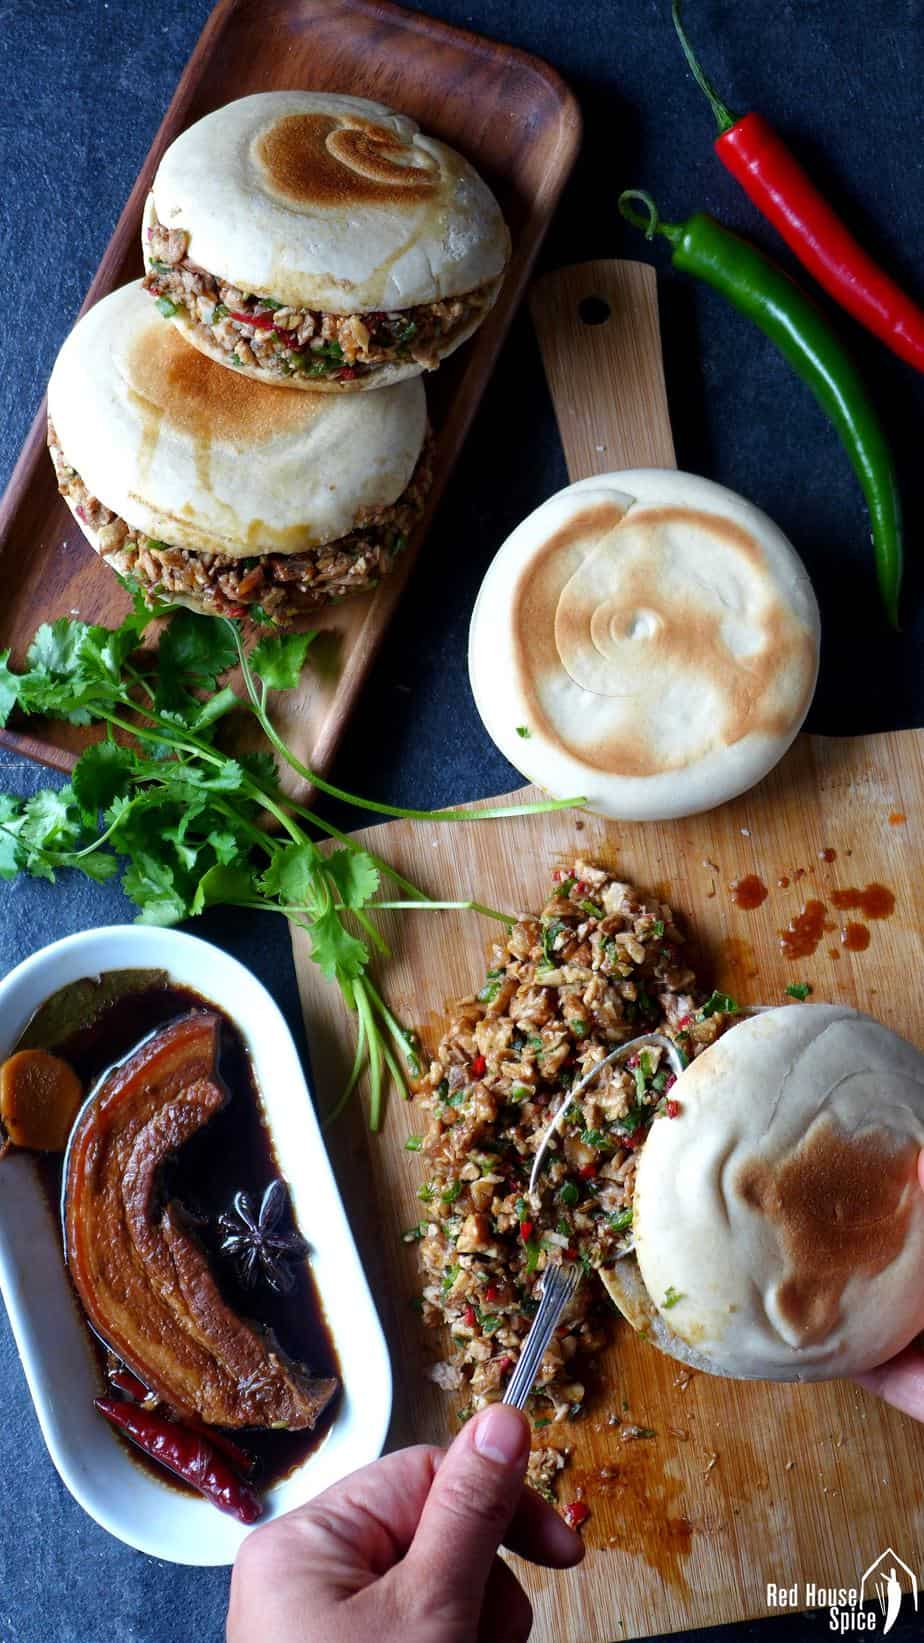 Chinese pork burgers and some braised pork belly.